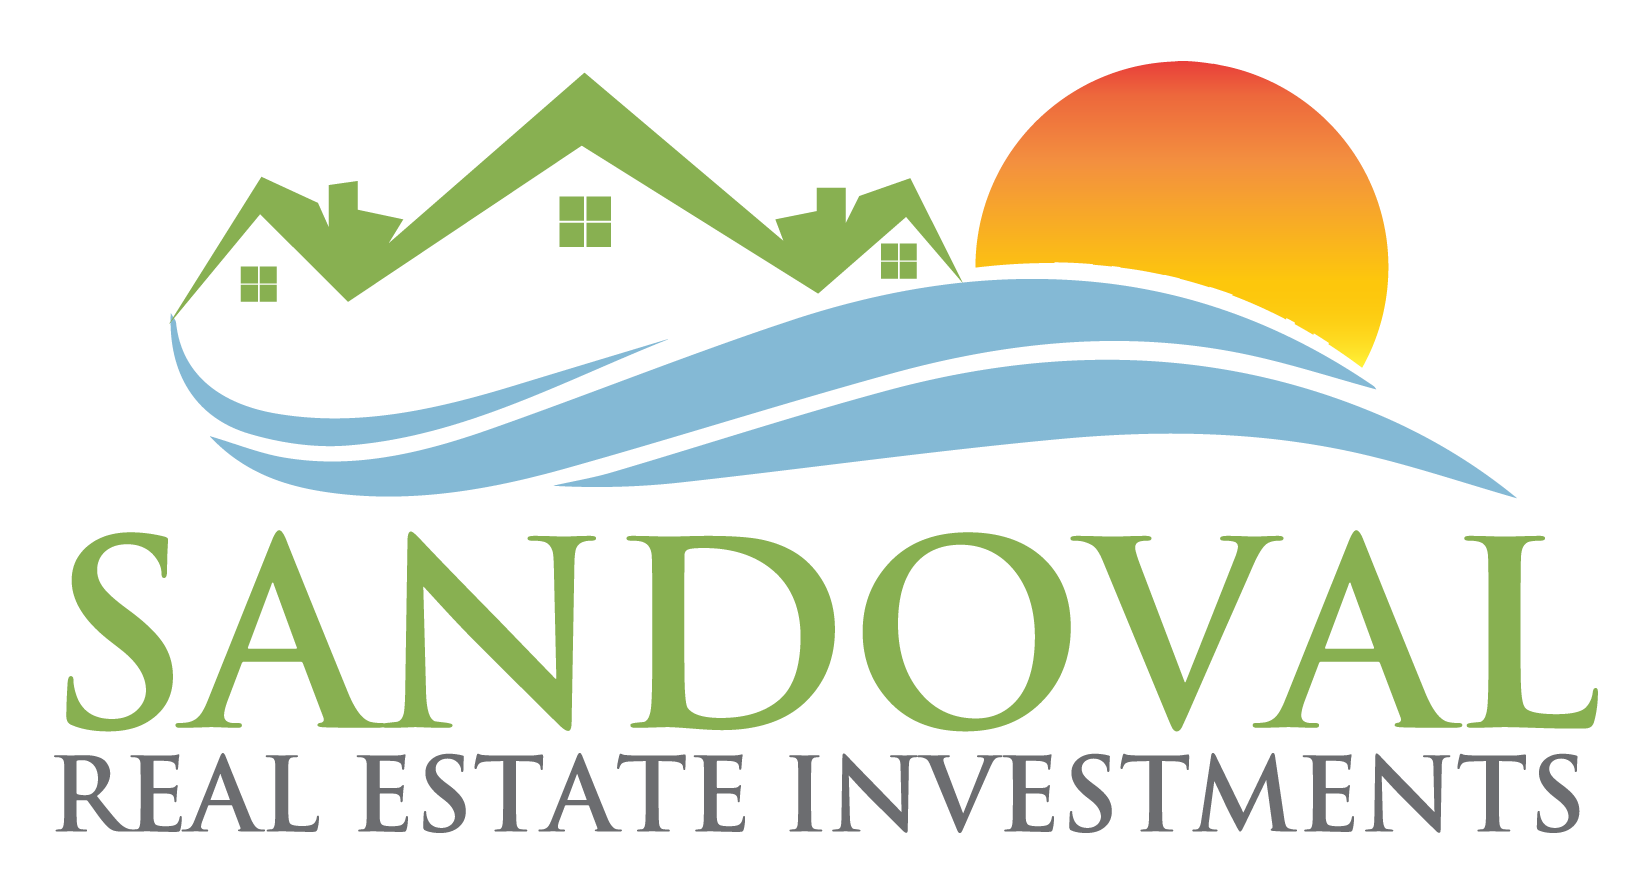 Sandoval Real Estate Investments